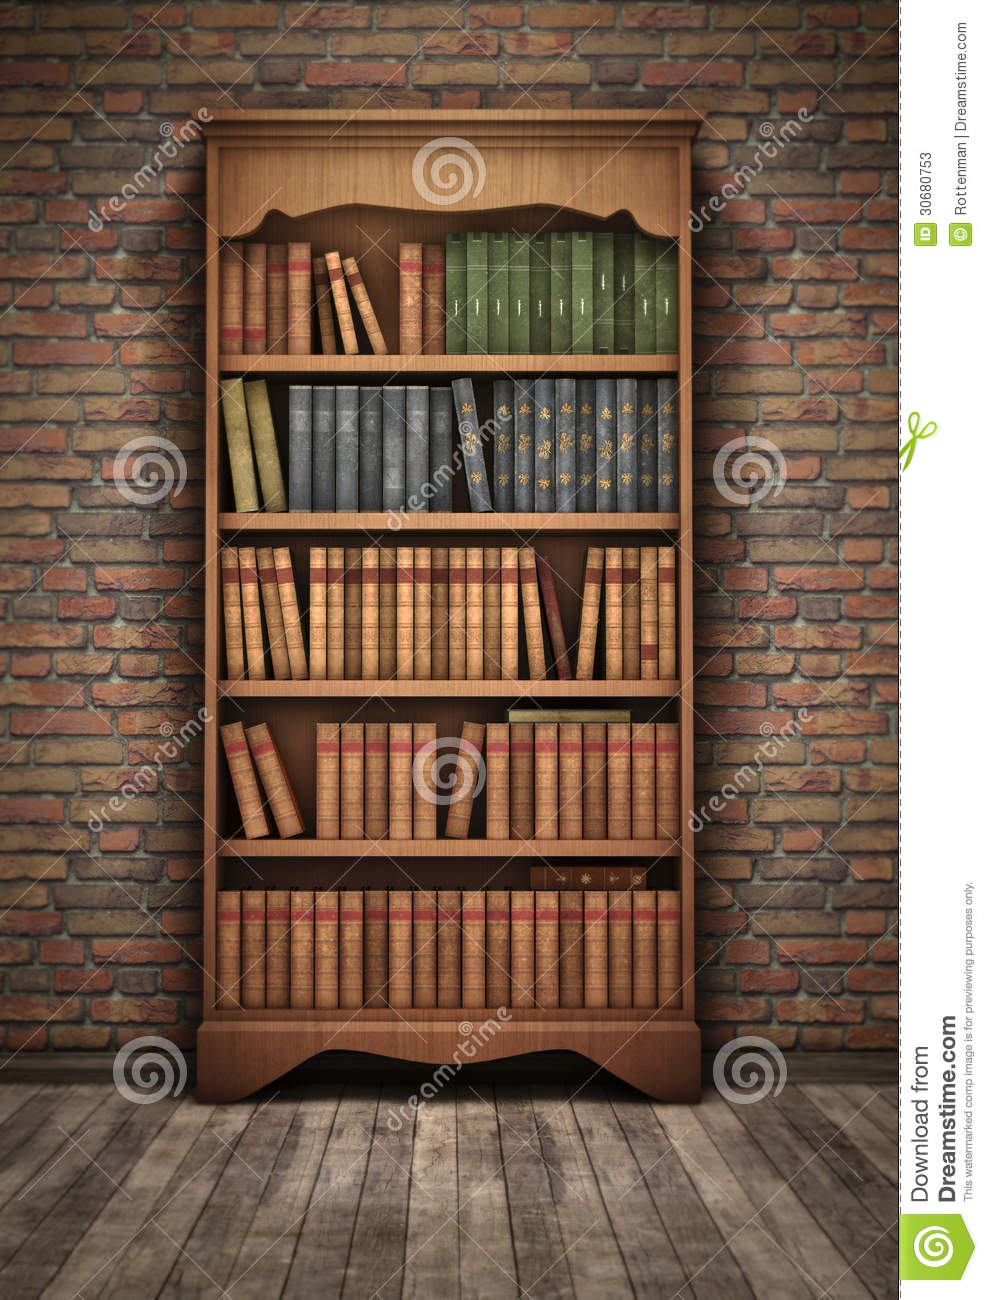 Old Bookshelf In Room Stock Photos Image 30680753